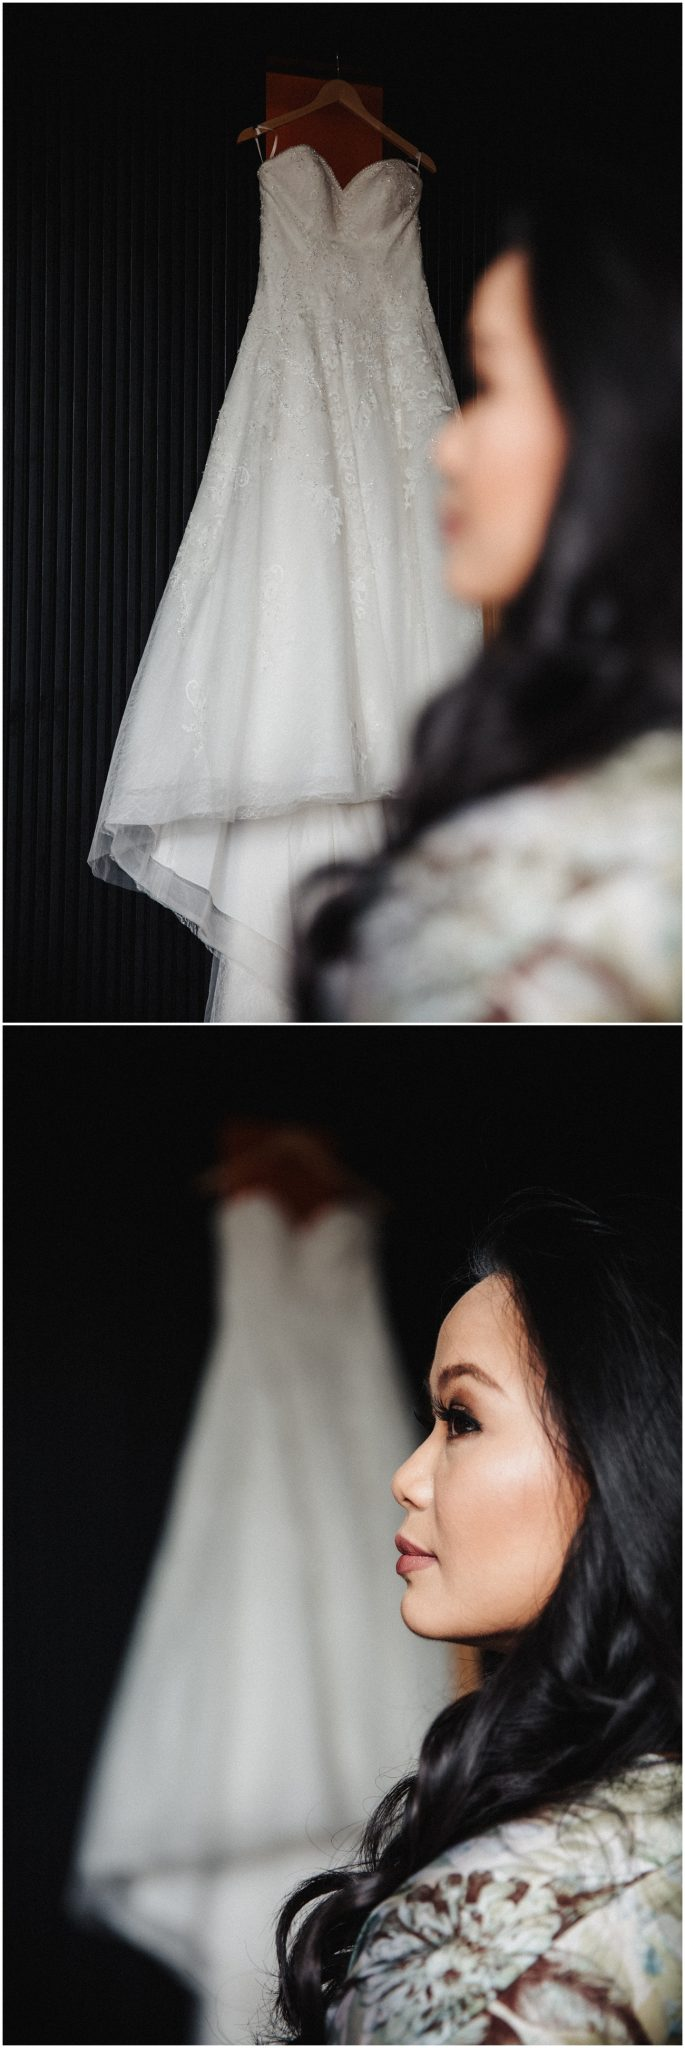 A portrait of the bride and the wedding dress hanging on the wall